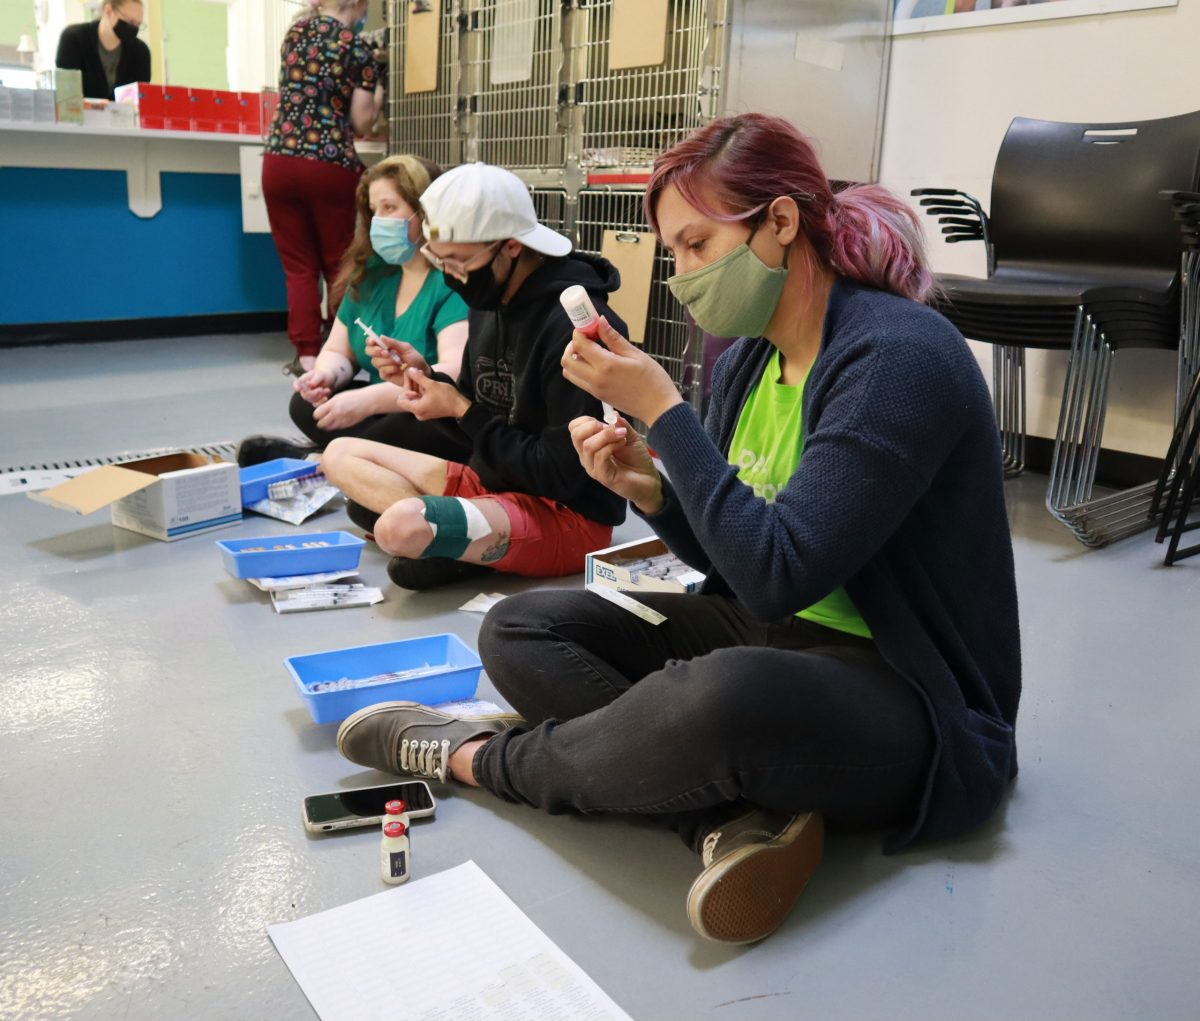 several people sit on the ground drawing vaccines